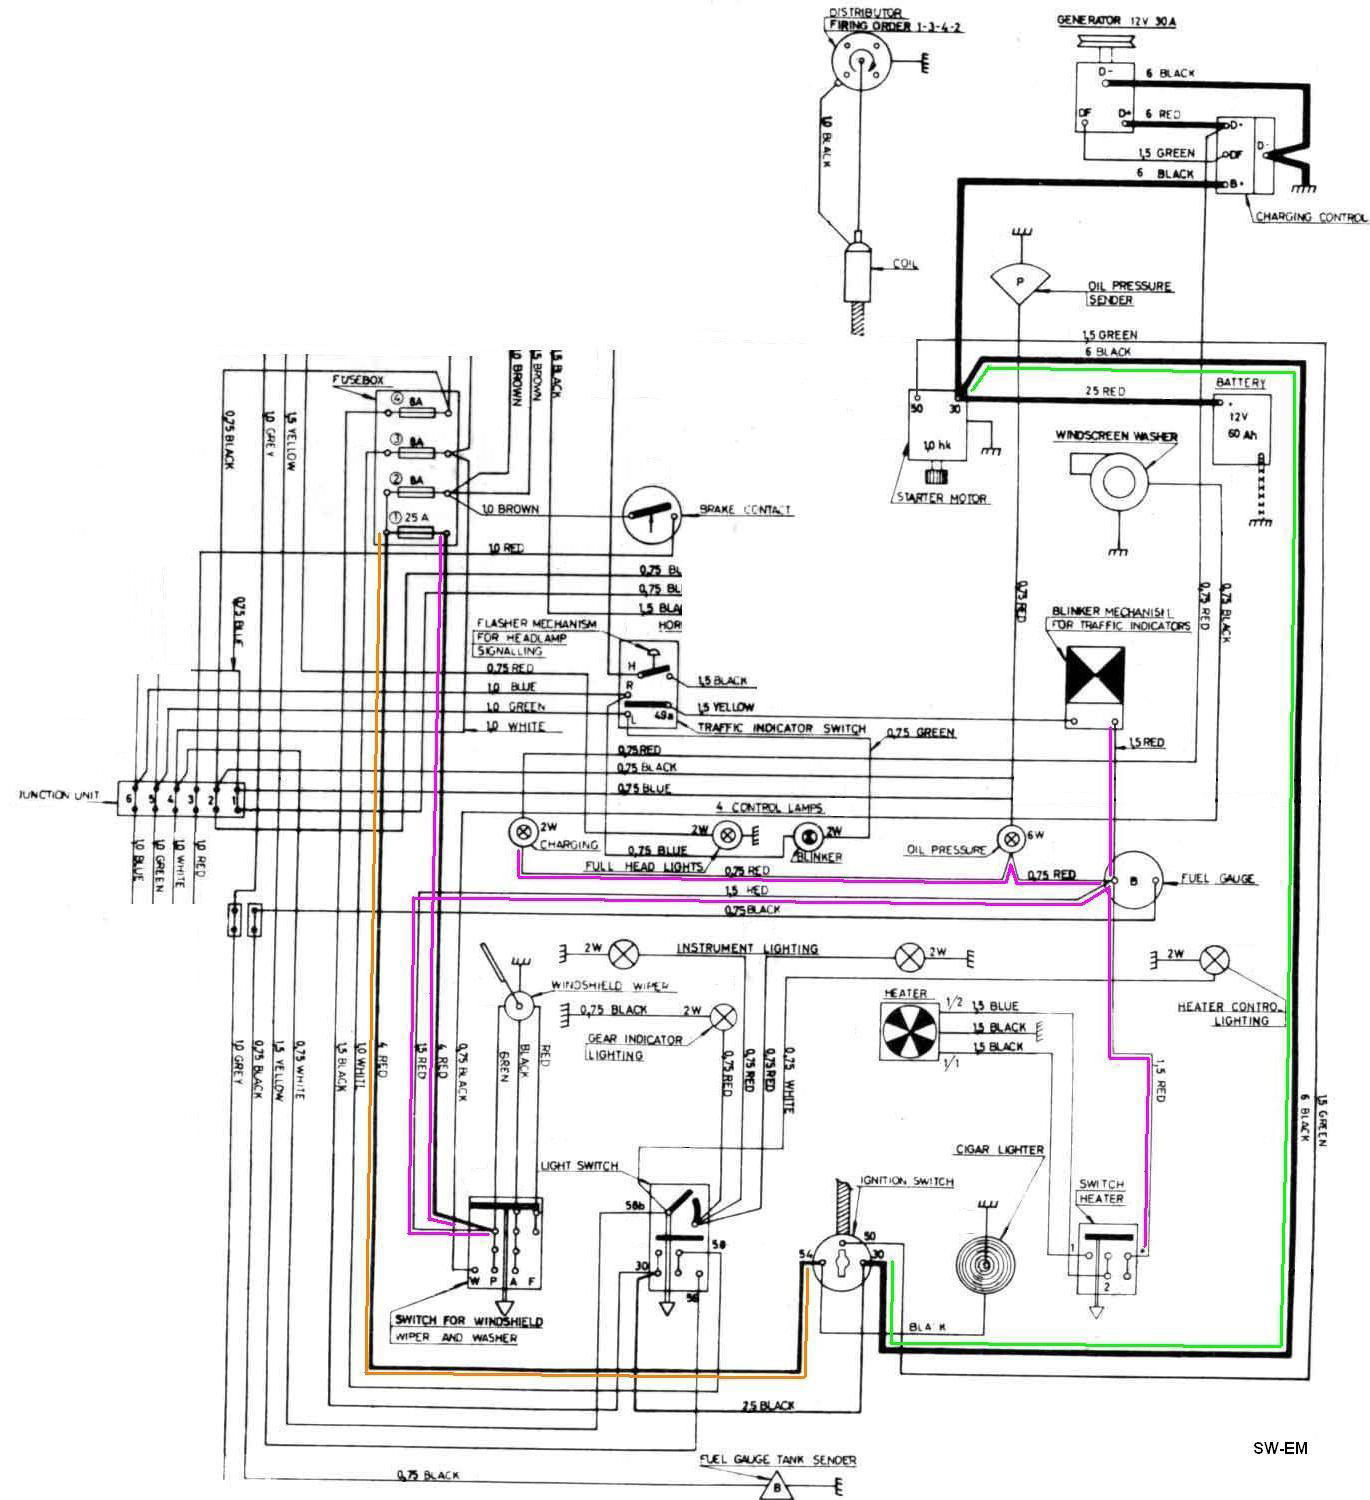 IGN SW wiring diag 122 markup 1800 ignition wiring swedish vs british design volvo penta industrial engine wiring diagram at n-0.co